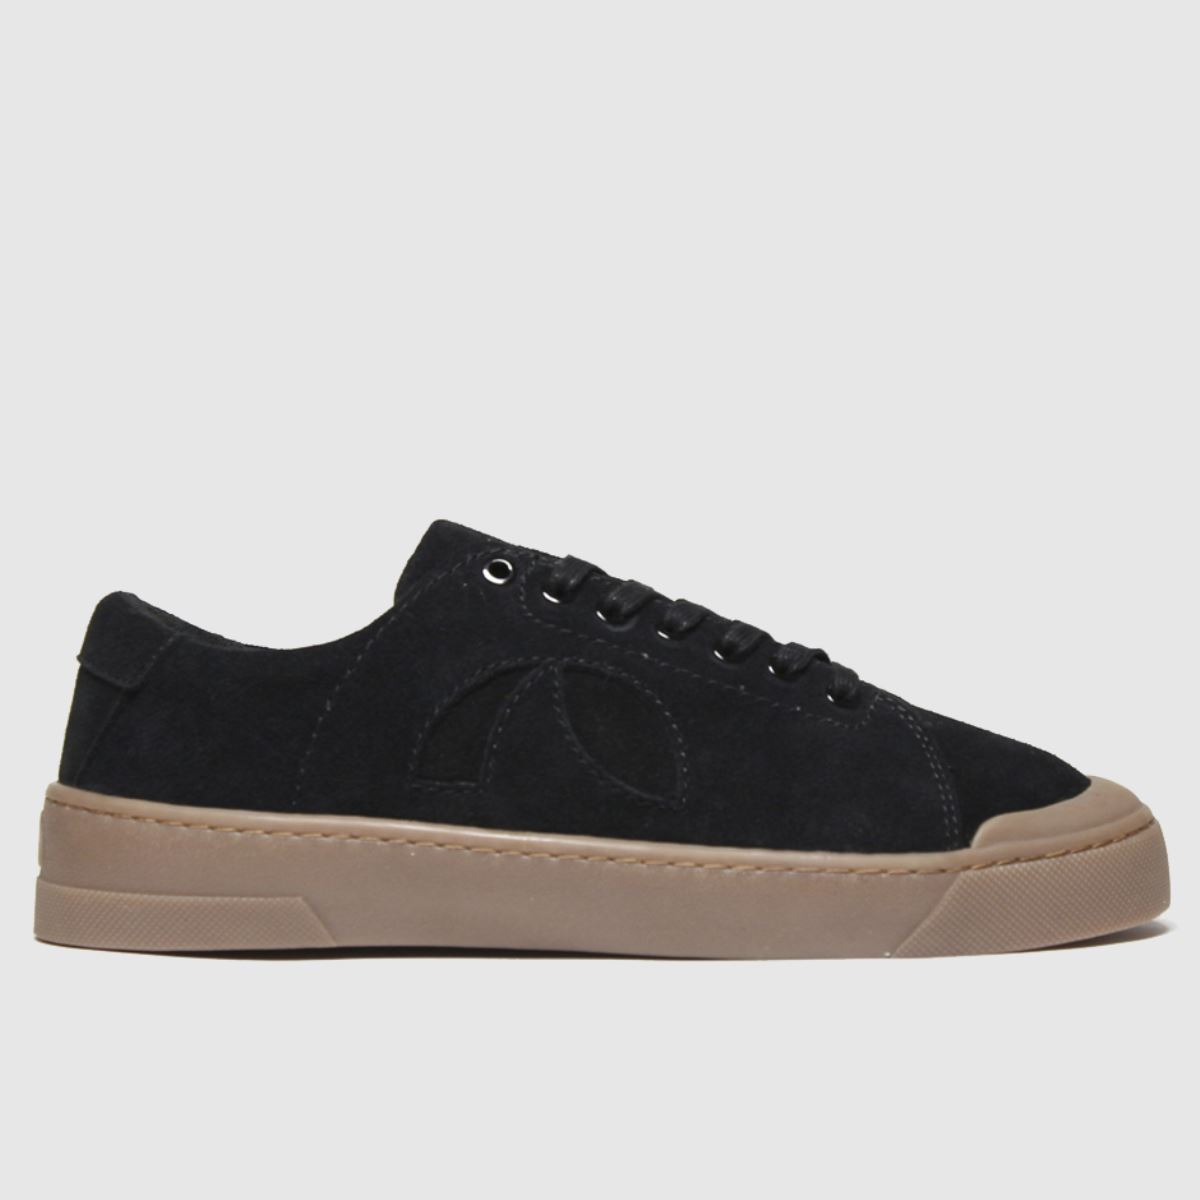 Roscomar Black Blvd Suede Trainers